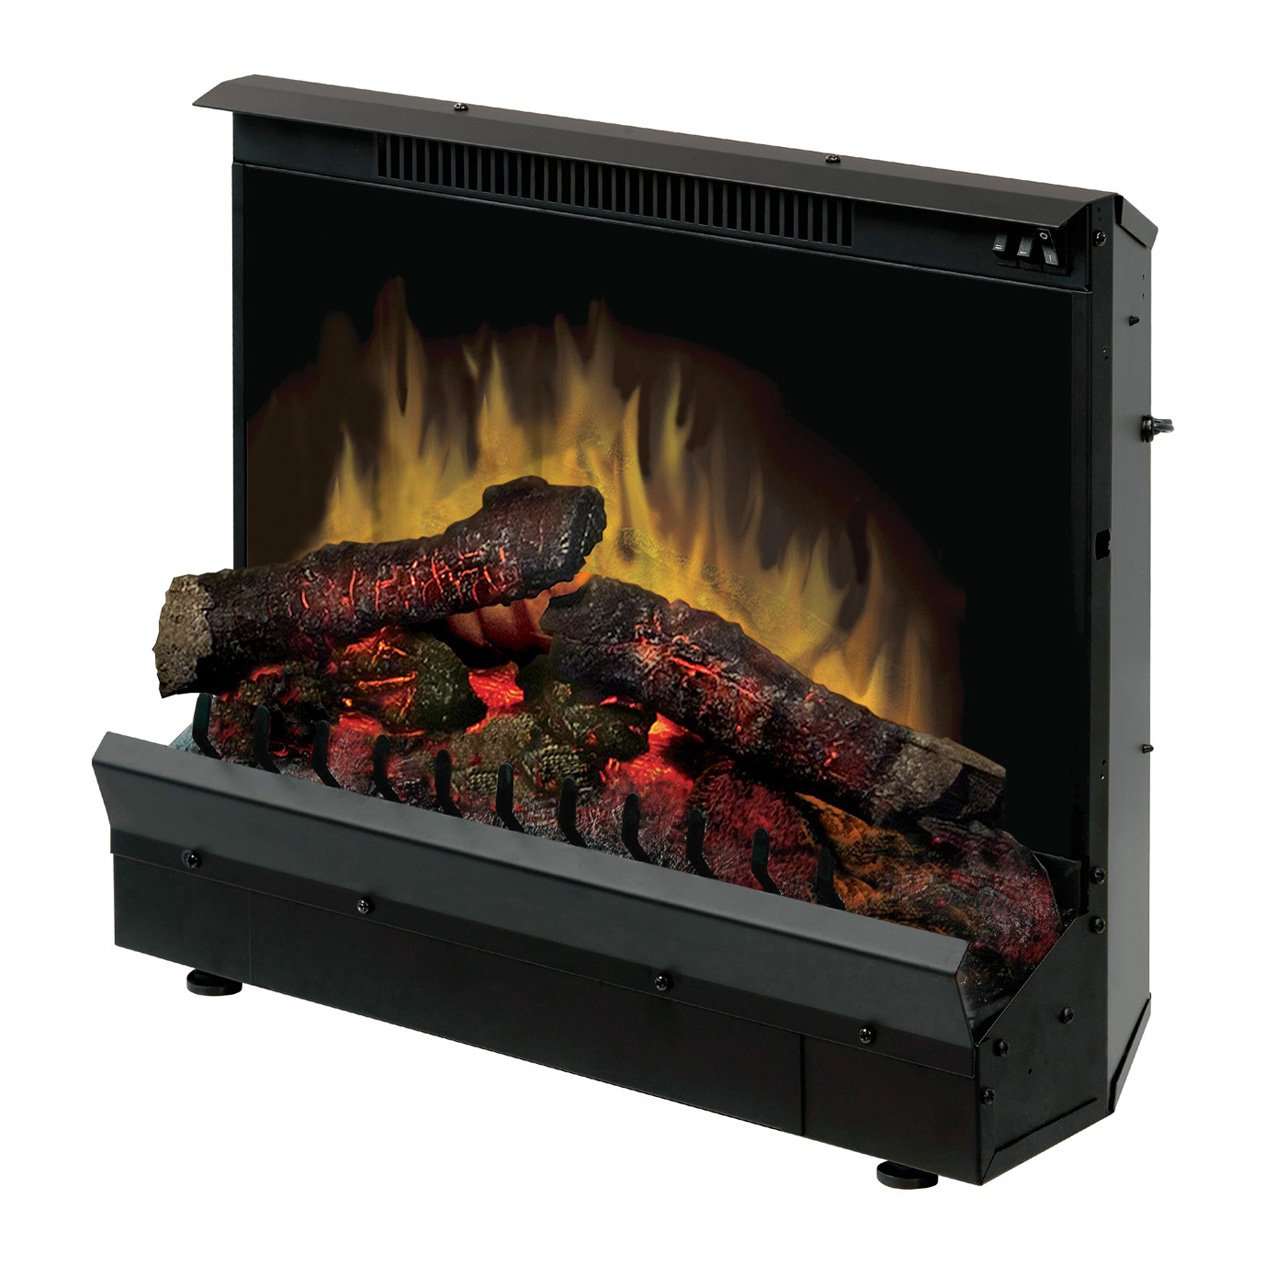 Dimplex DFI2310 Electric Fireplace Deluxe 23-Inch Insert_1